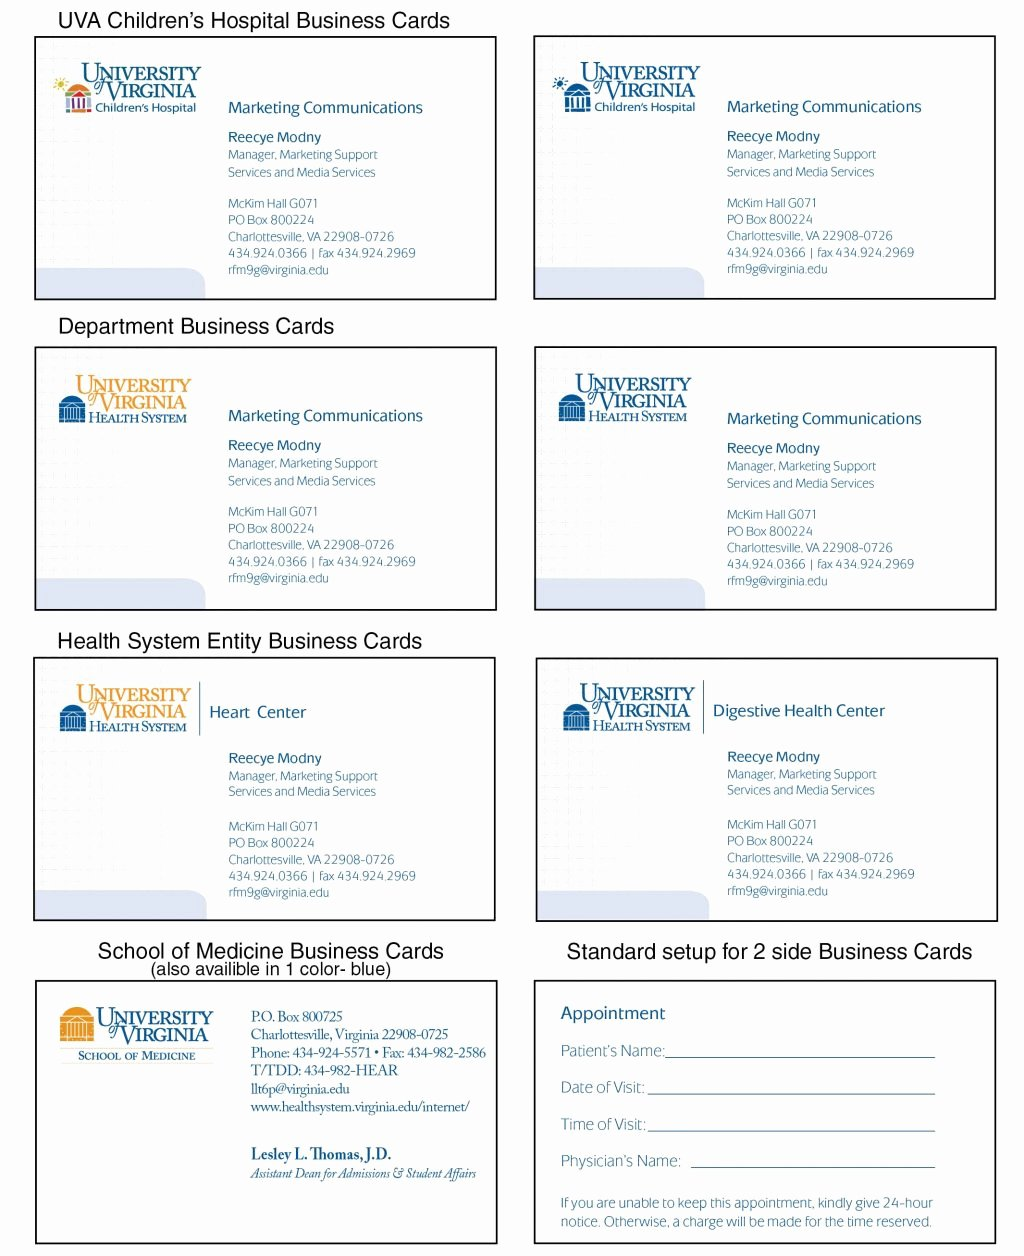 Networking Business Cards Template Inspirational Networking Business Card Template Word Templates Collections